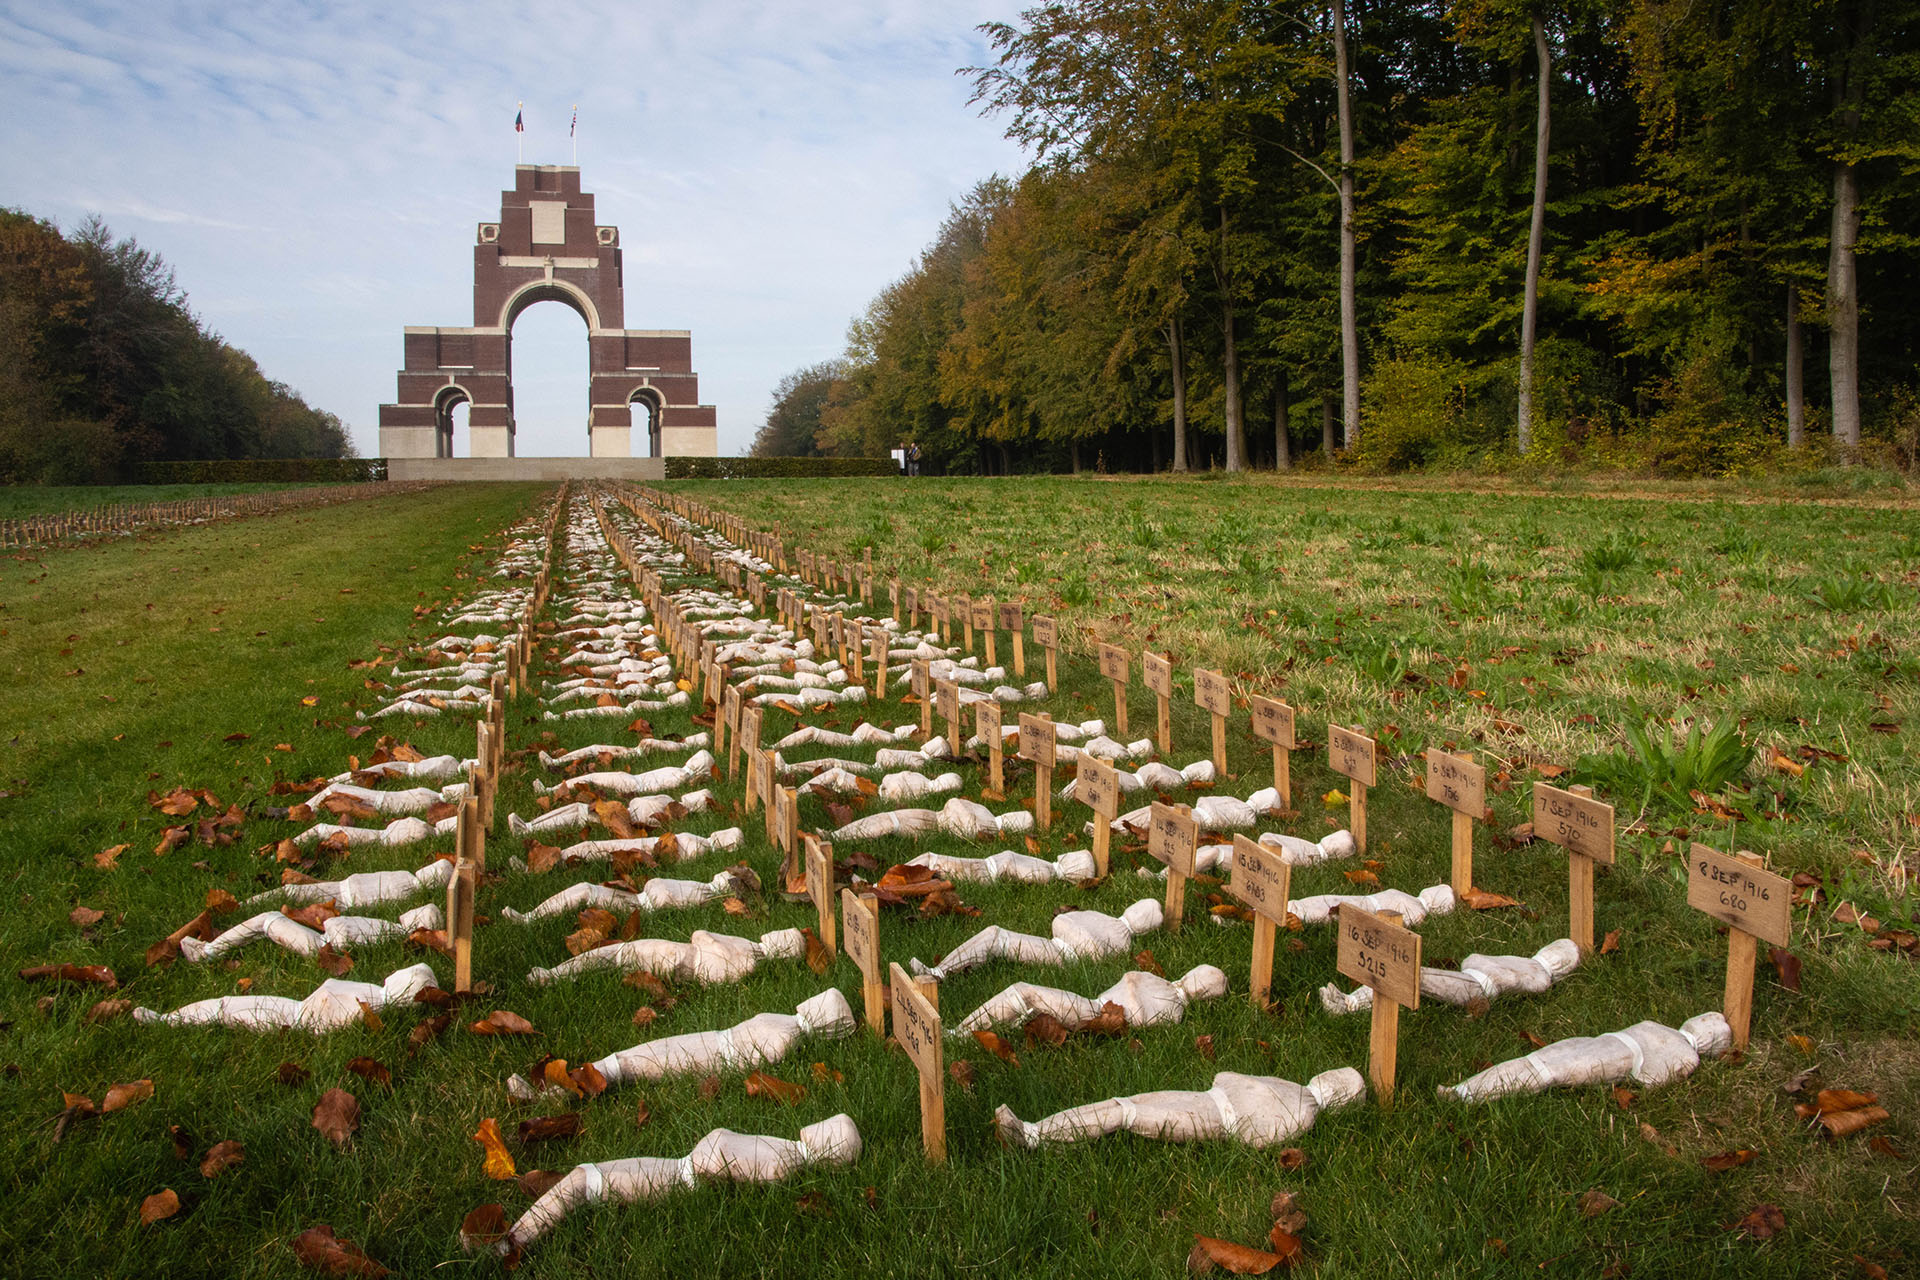 Sir Edwin Lutyens' great memorial to the Missing of the Somme at Thiepval, with an installation 'Shrouds of the Somme', by Rob Heard that commemorates British and Commonwealth dead